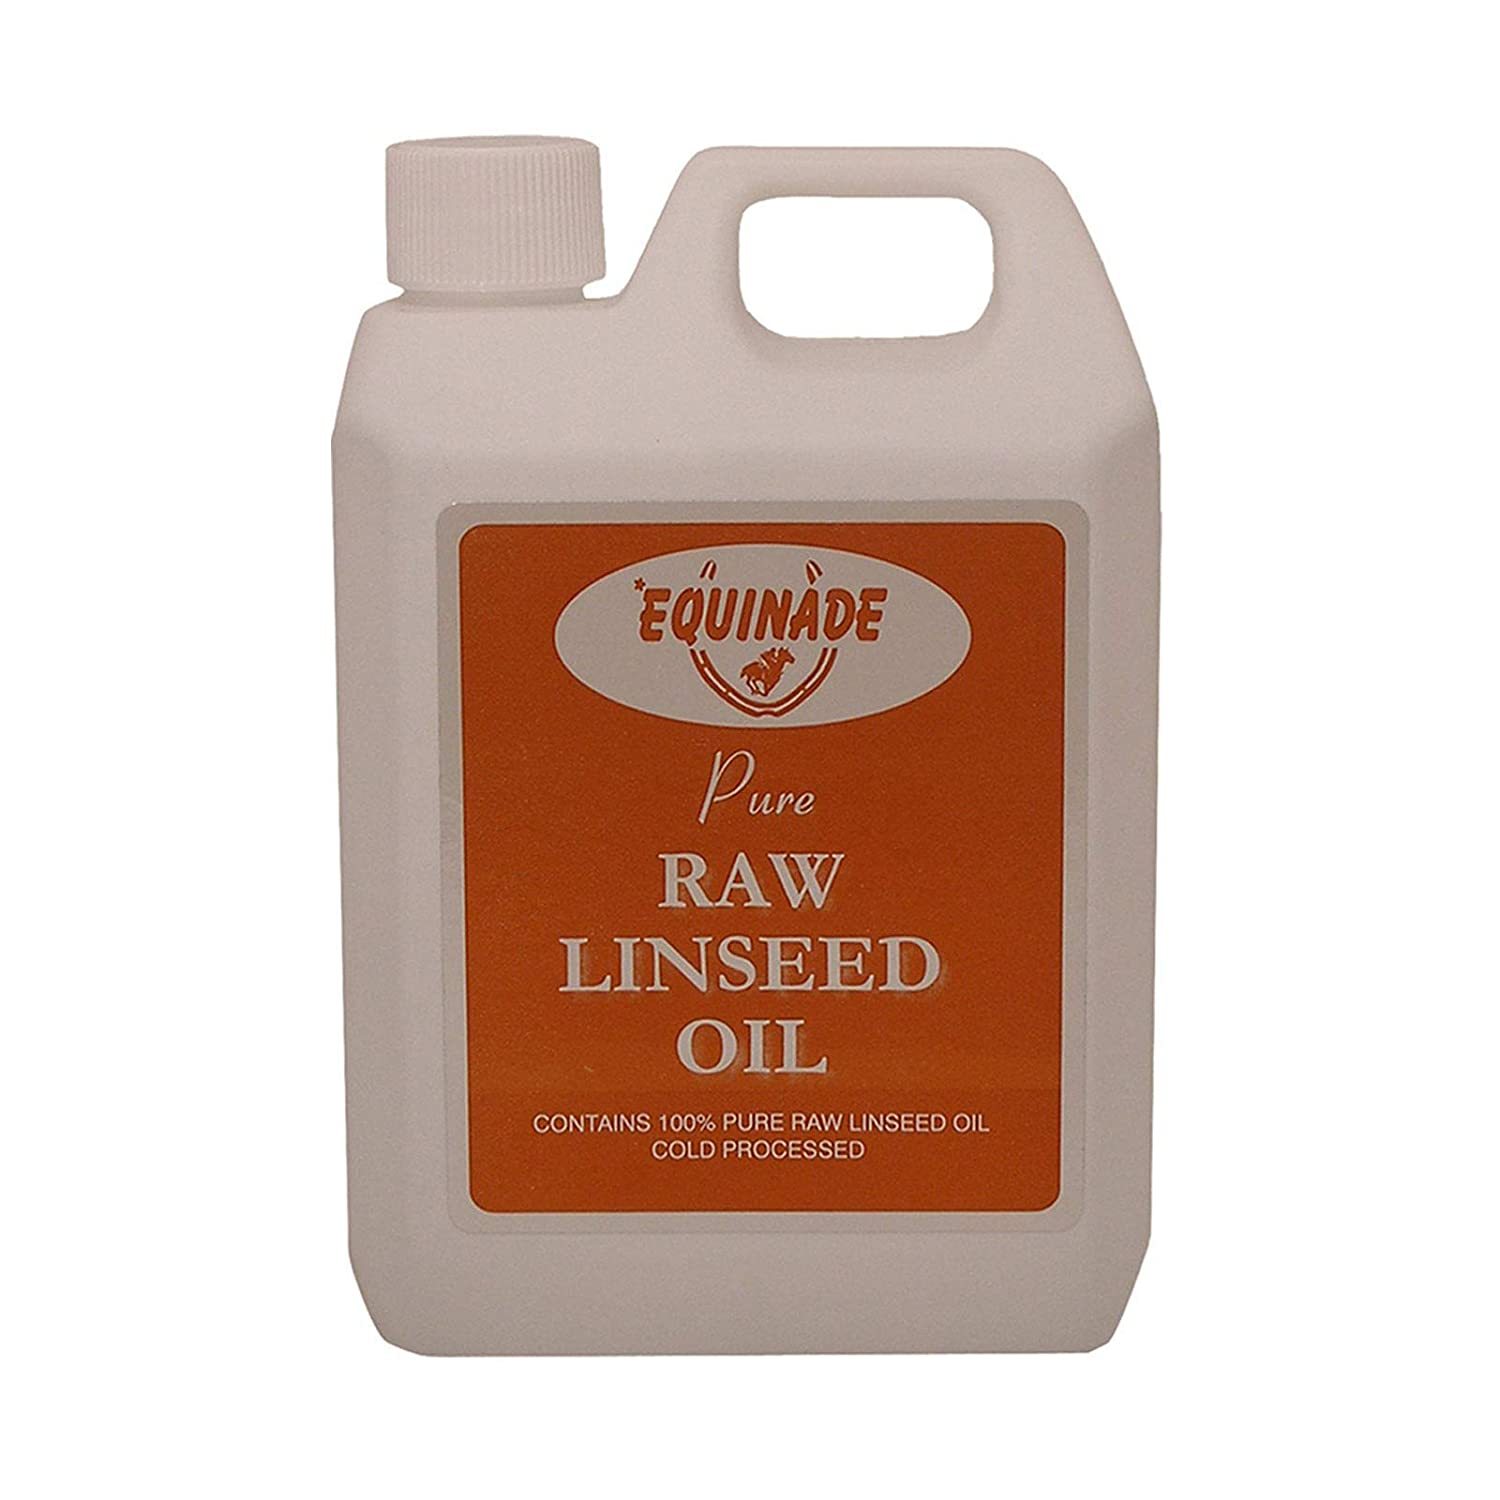 EQUINADE RAW Linseed Oil 2.5L (E9400)